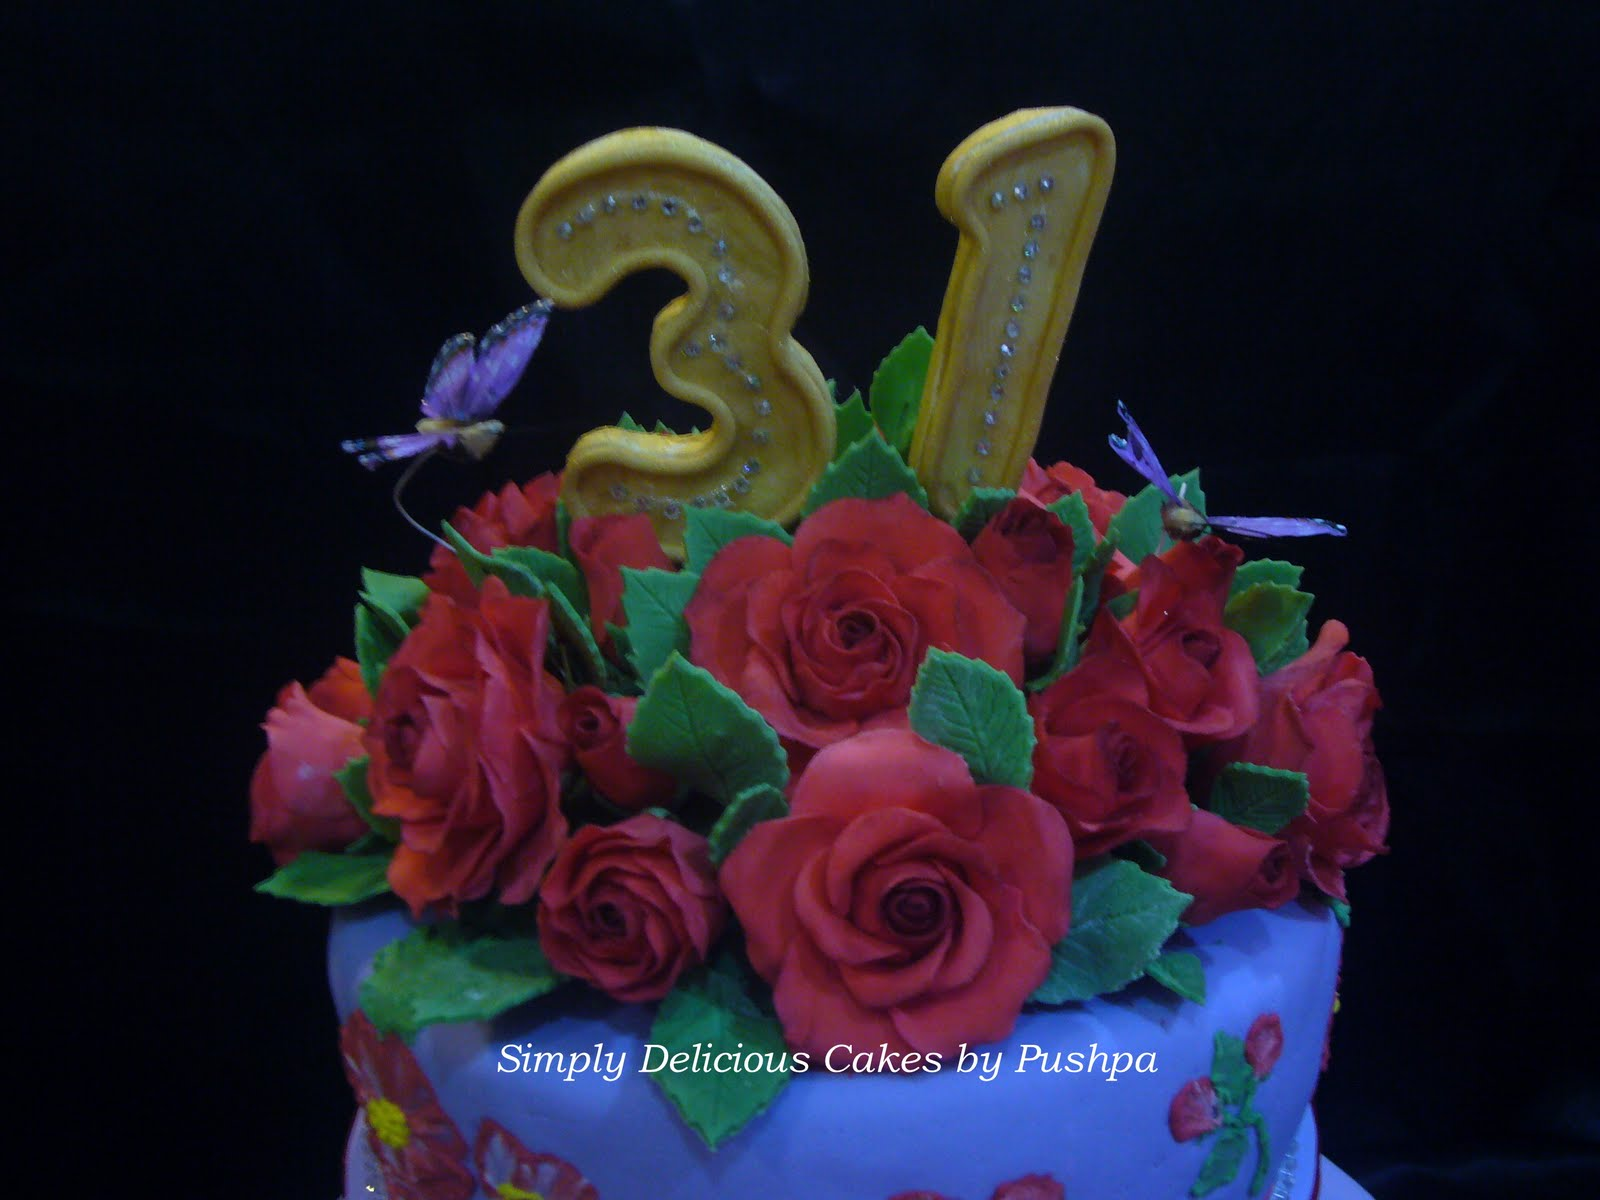 Simply Delicious Cakes 31st Wedding Anniversary